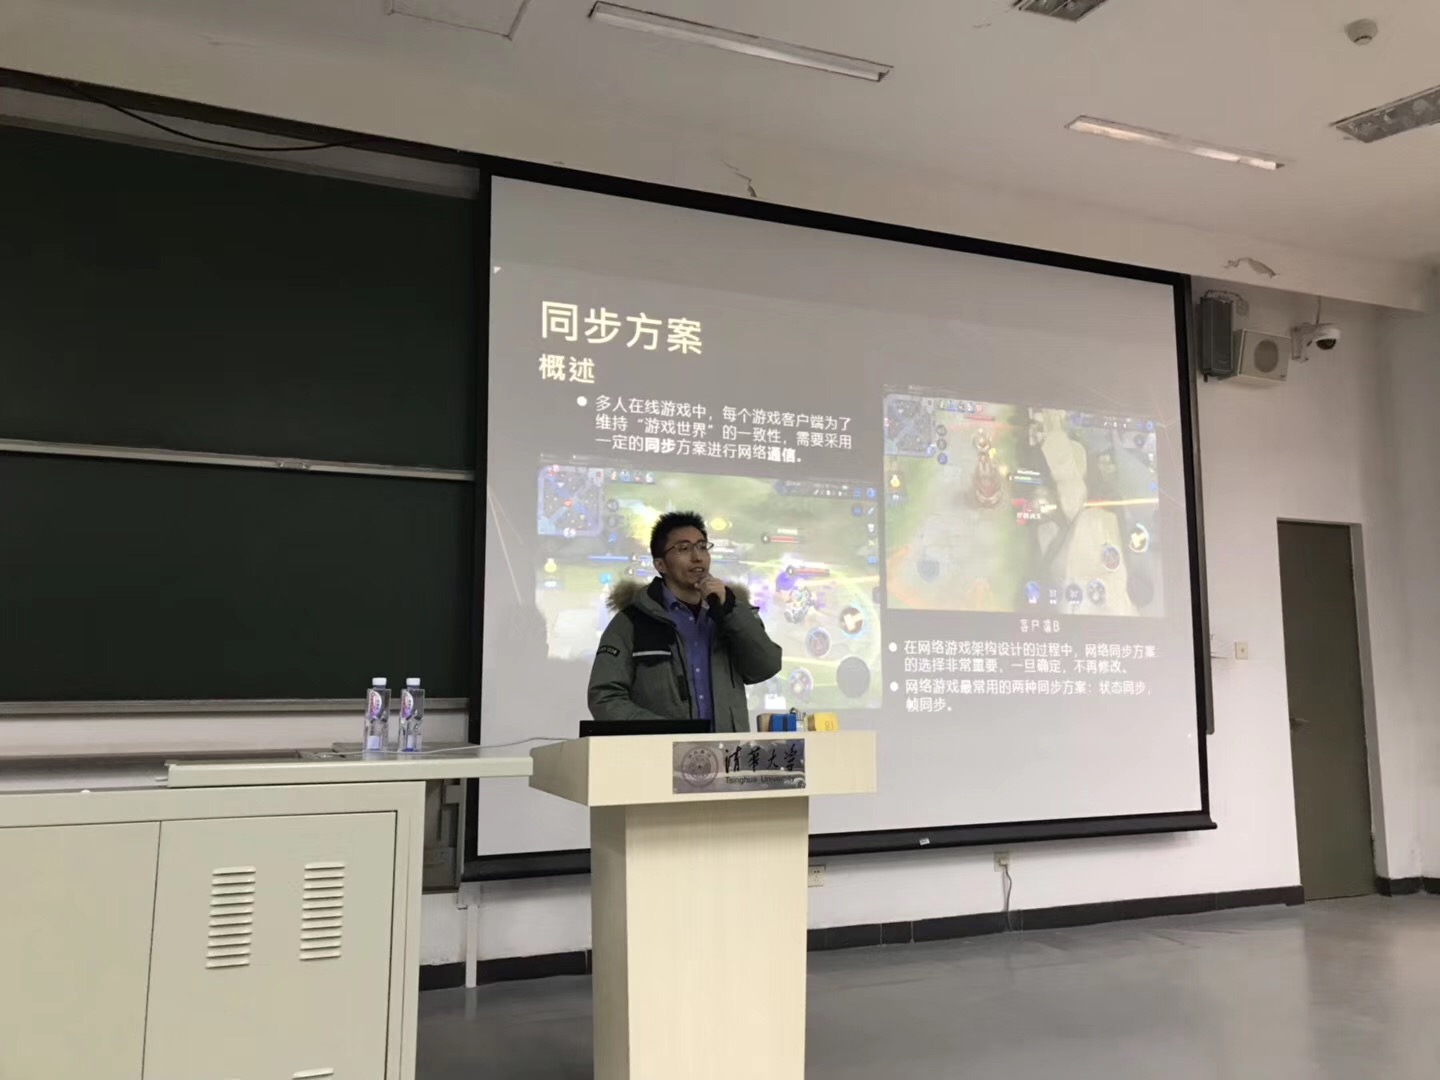 Dec 2018:  Dan hosted the guest lectures by speakers from Tencent, Alibaba, Baidu, and ByteDance.